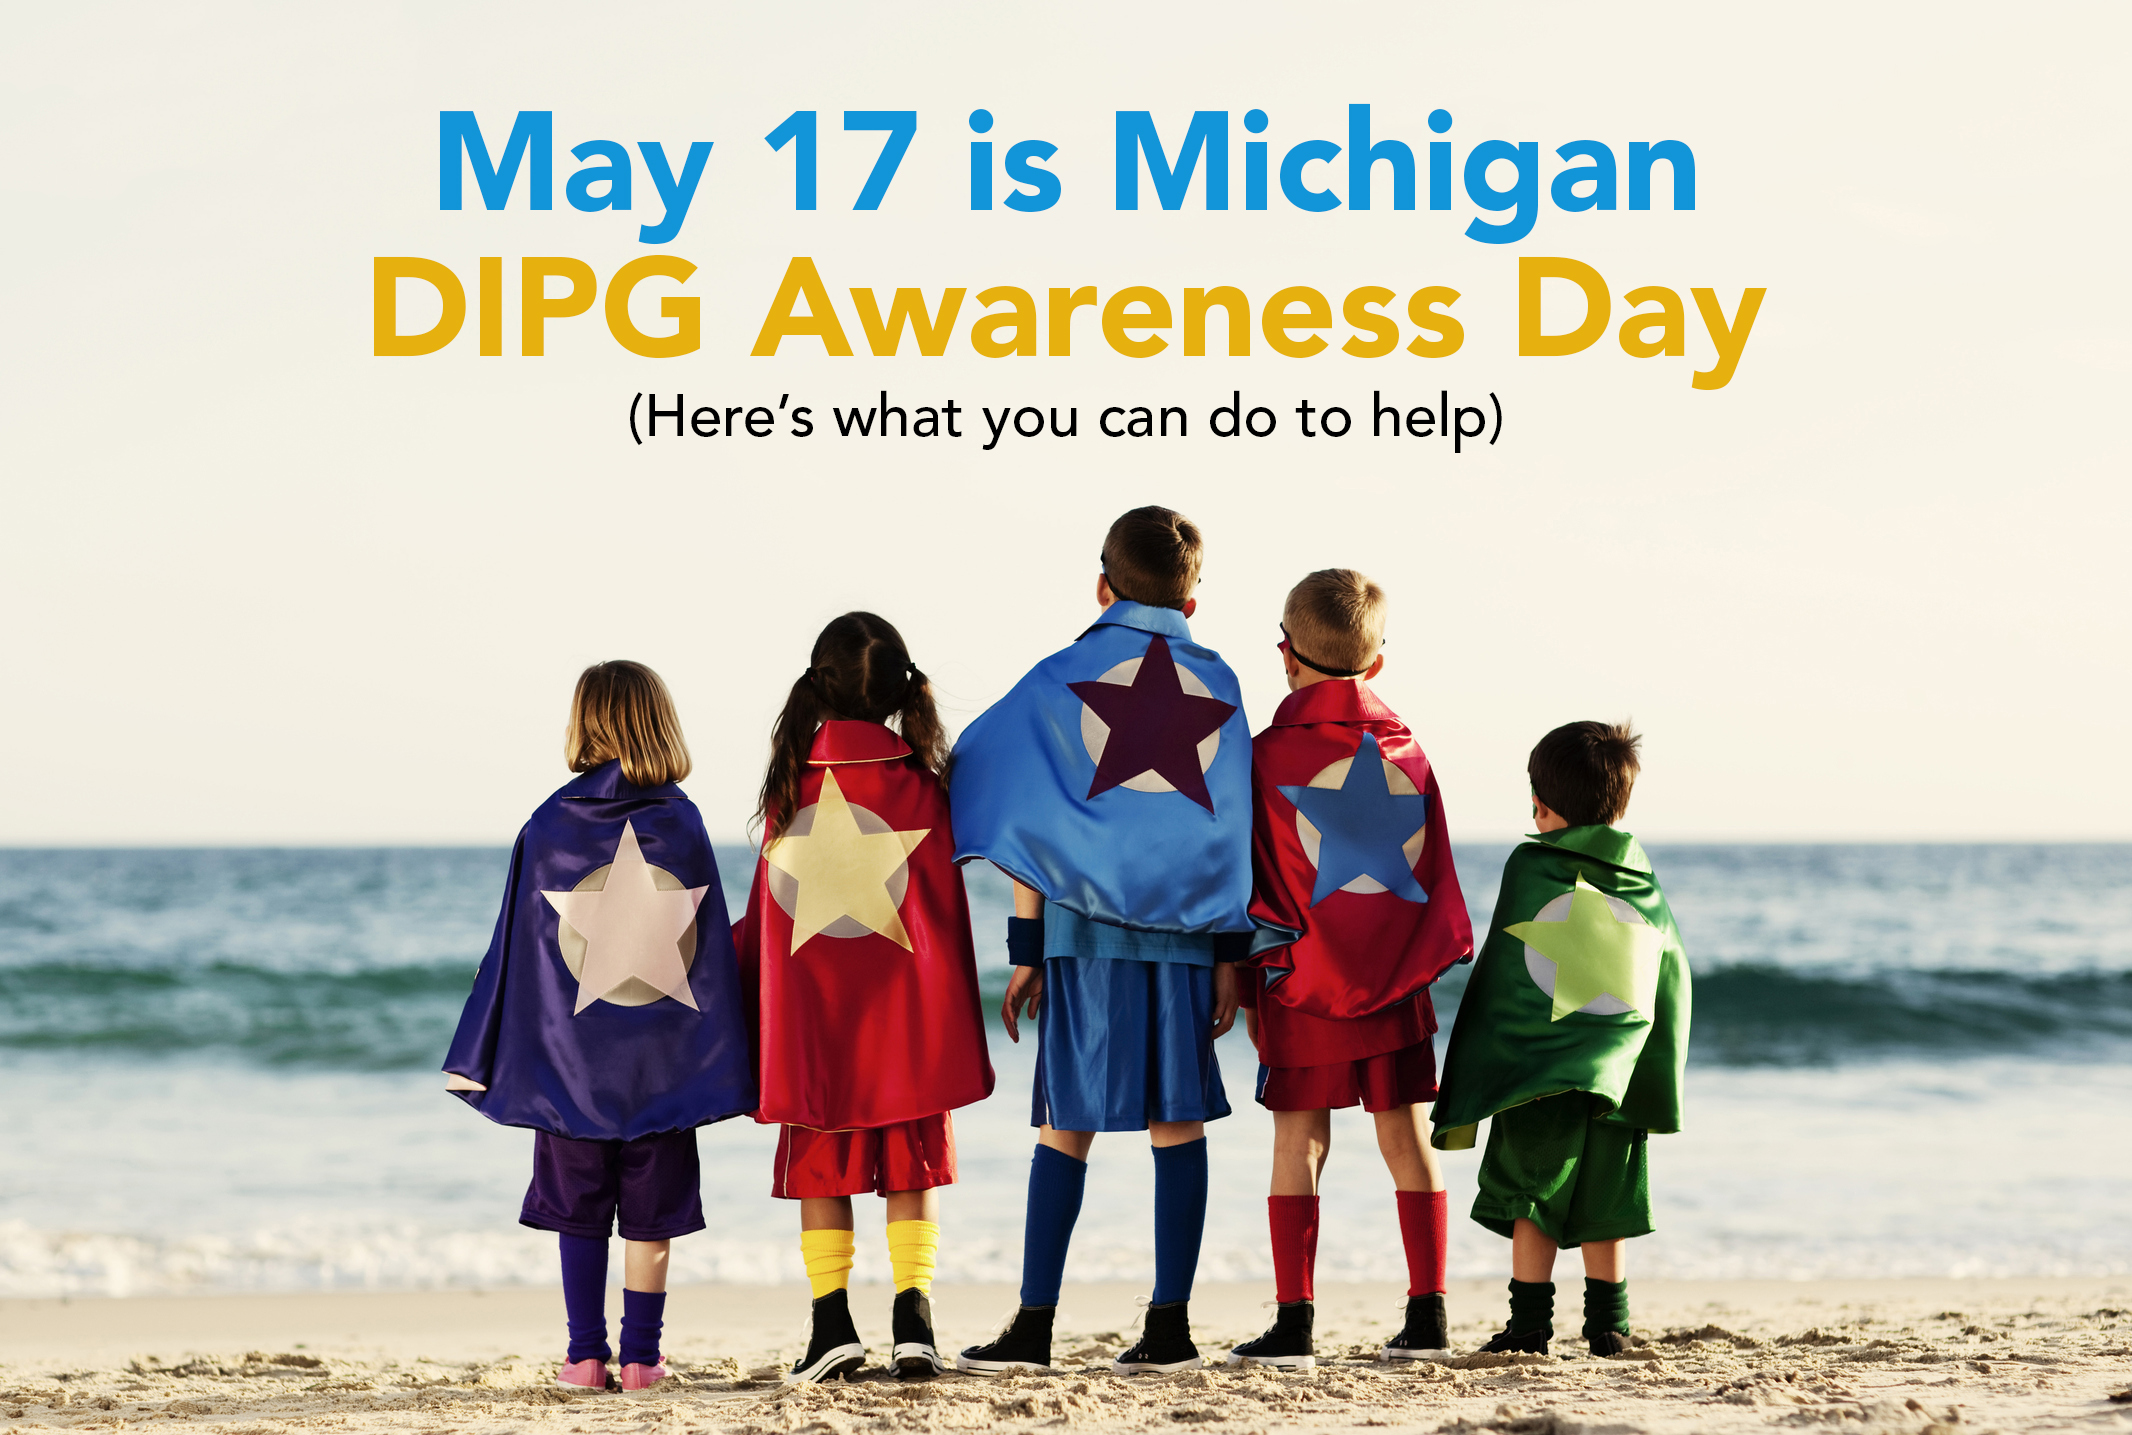 It's DIPG Awareness Day — Are You Ready for the Lemon Face Challenge